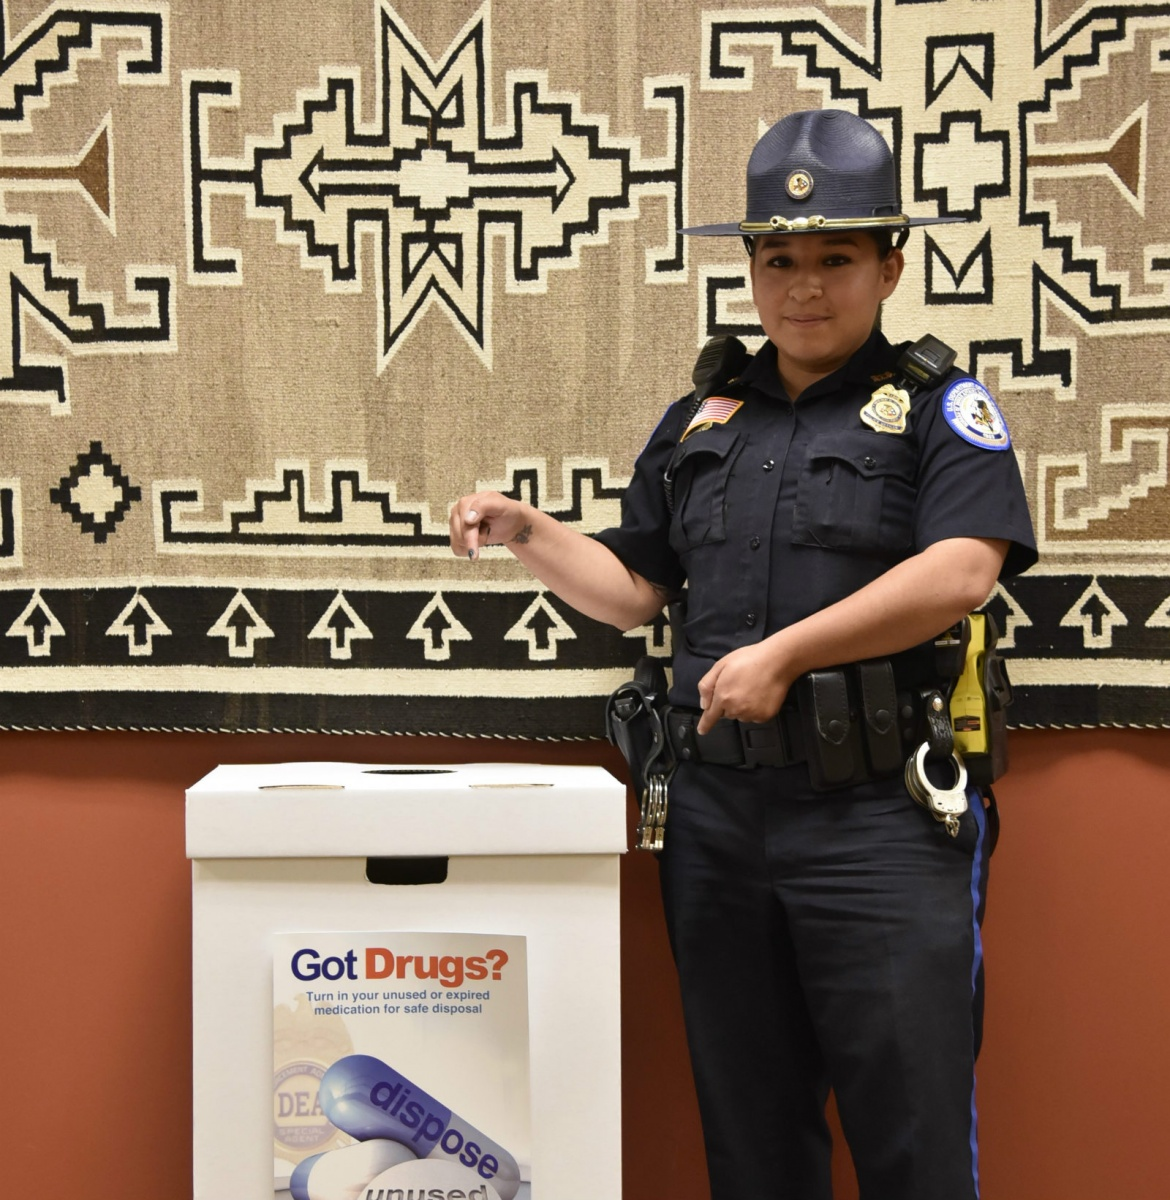 A female police officer in a navy blue uniform and wide hat stands inside next to a box for turning in unused medicine.